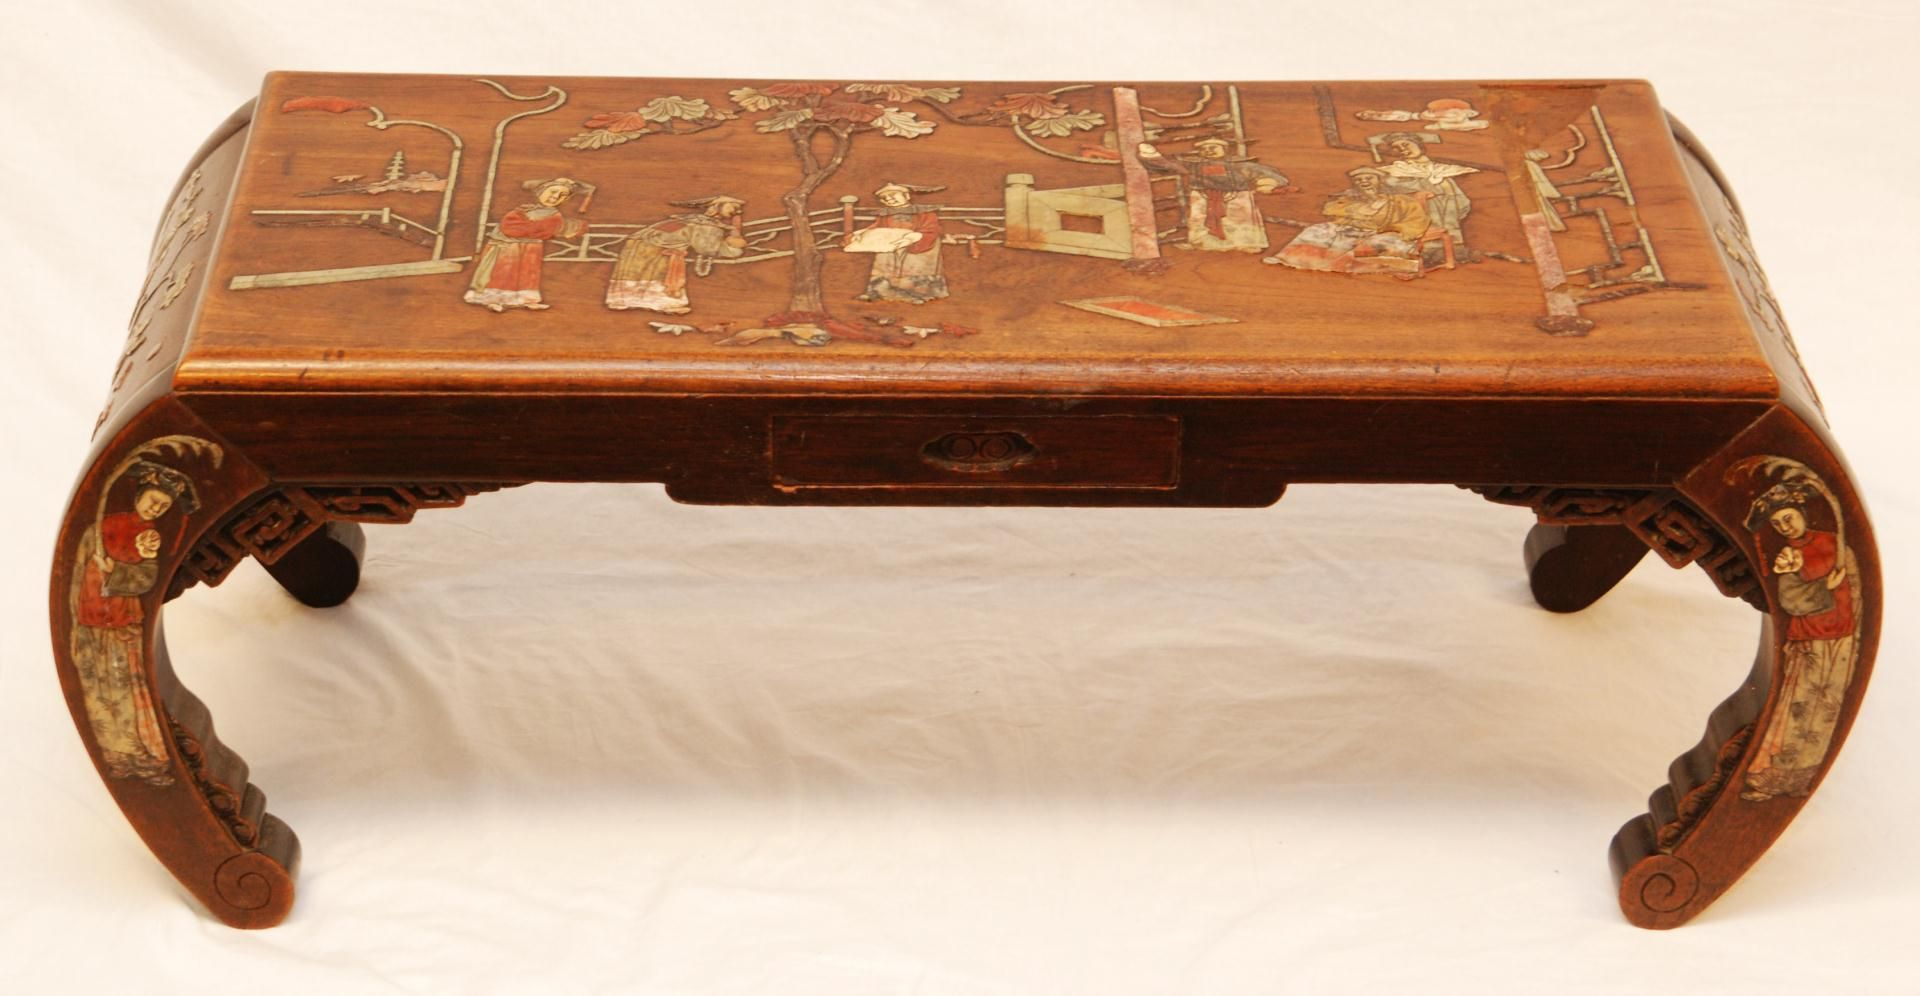 Chinese Carved Wood Table Chinese Carved Wood Inlaid Stone Coffee Table Antique Chinese Carved Coffee Table Chinese Coffee Table Coffee Table Design [ 996 x 1920 Pixel ]